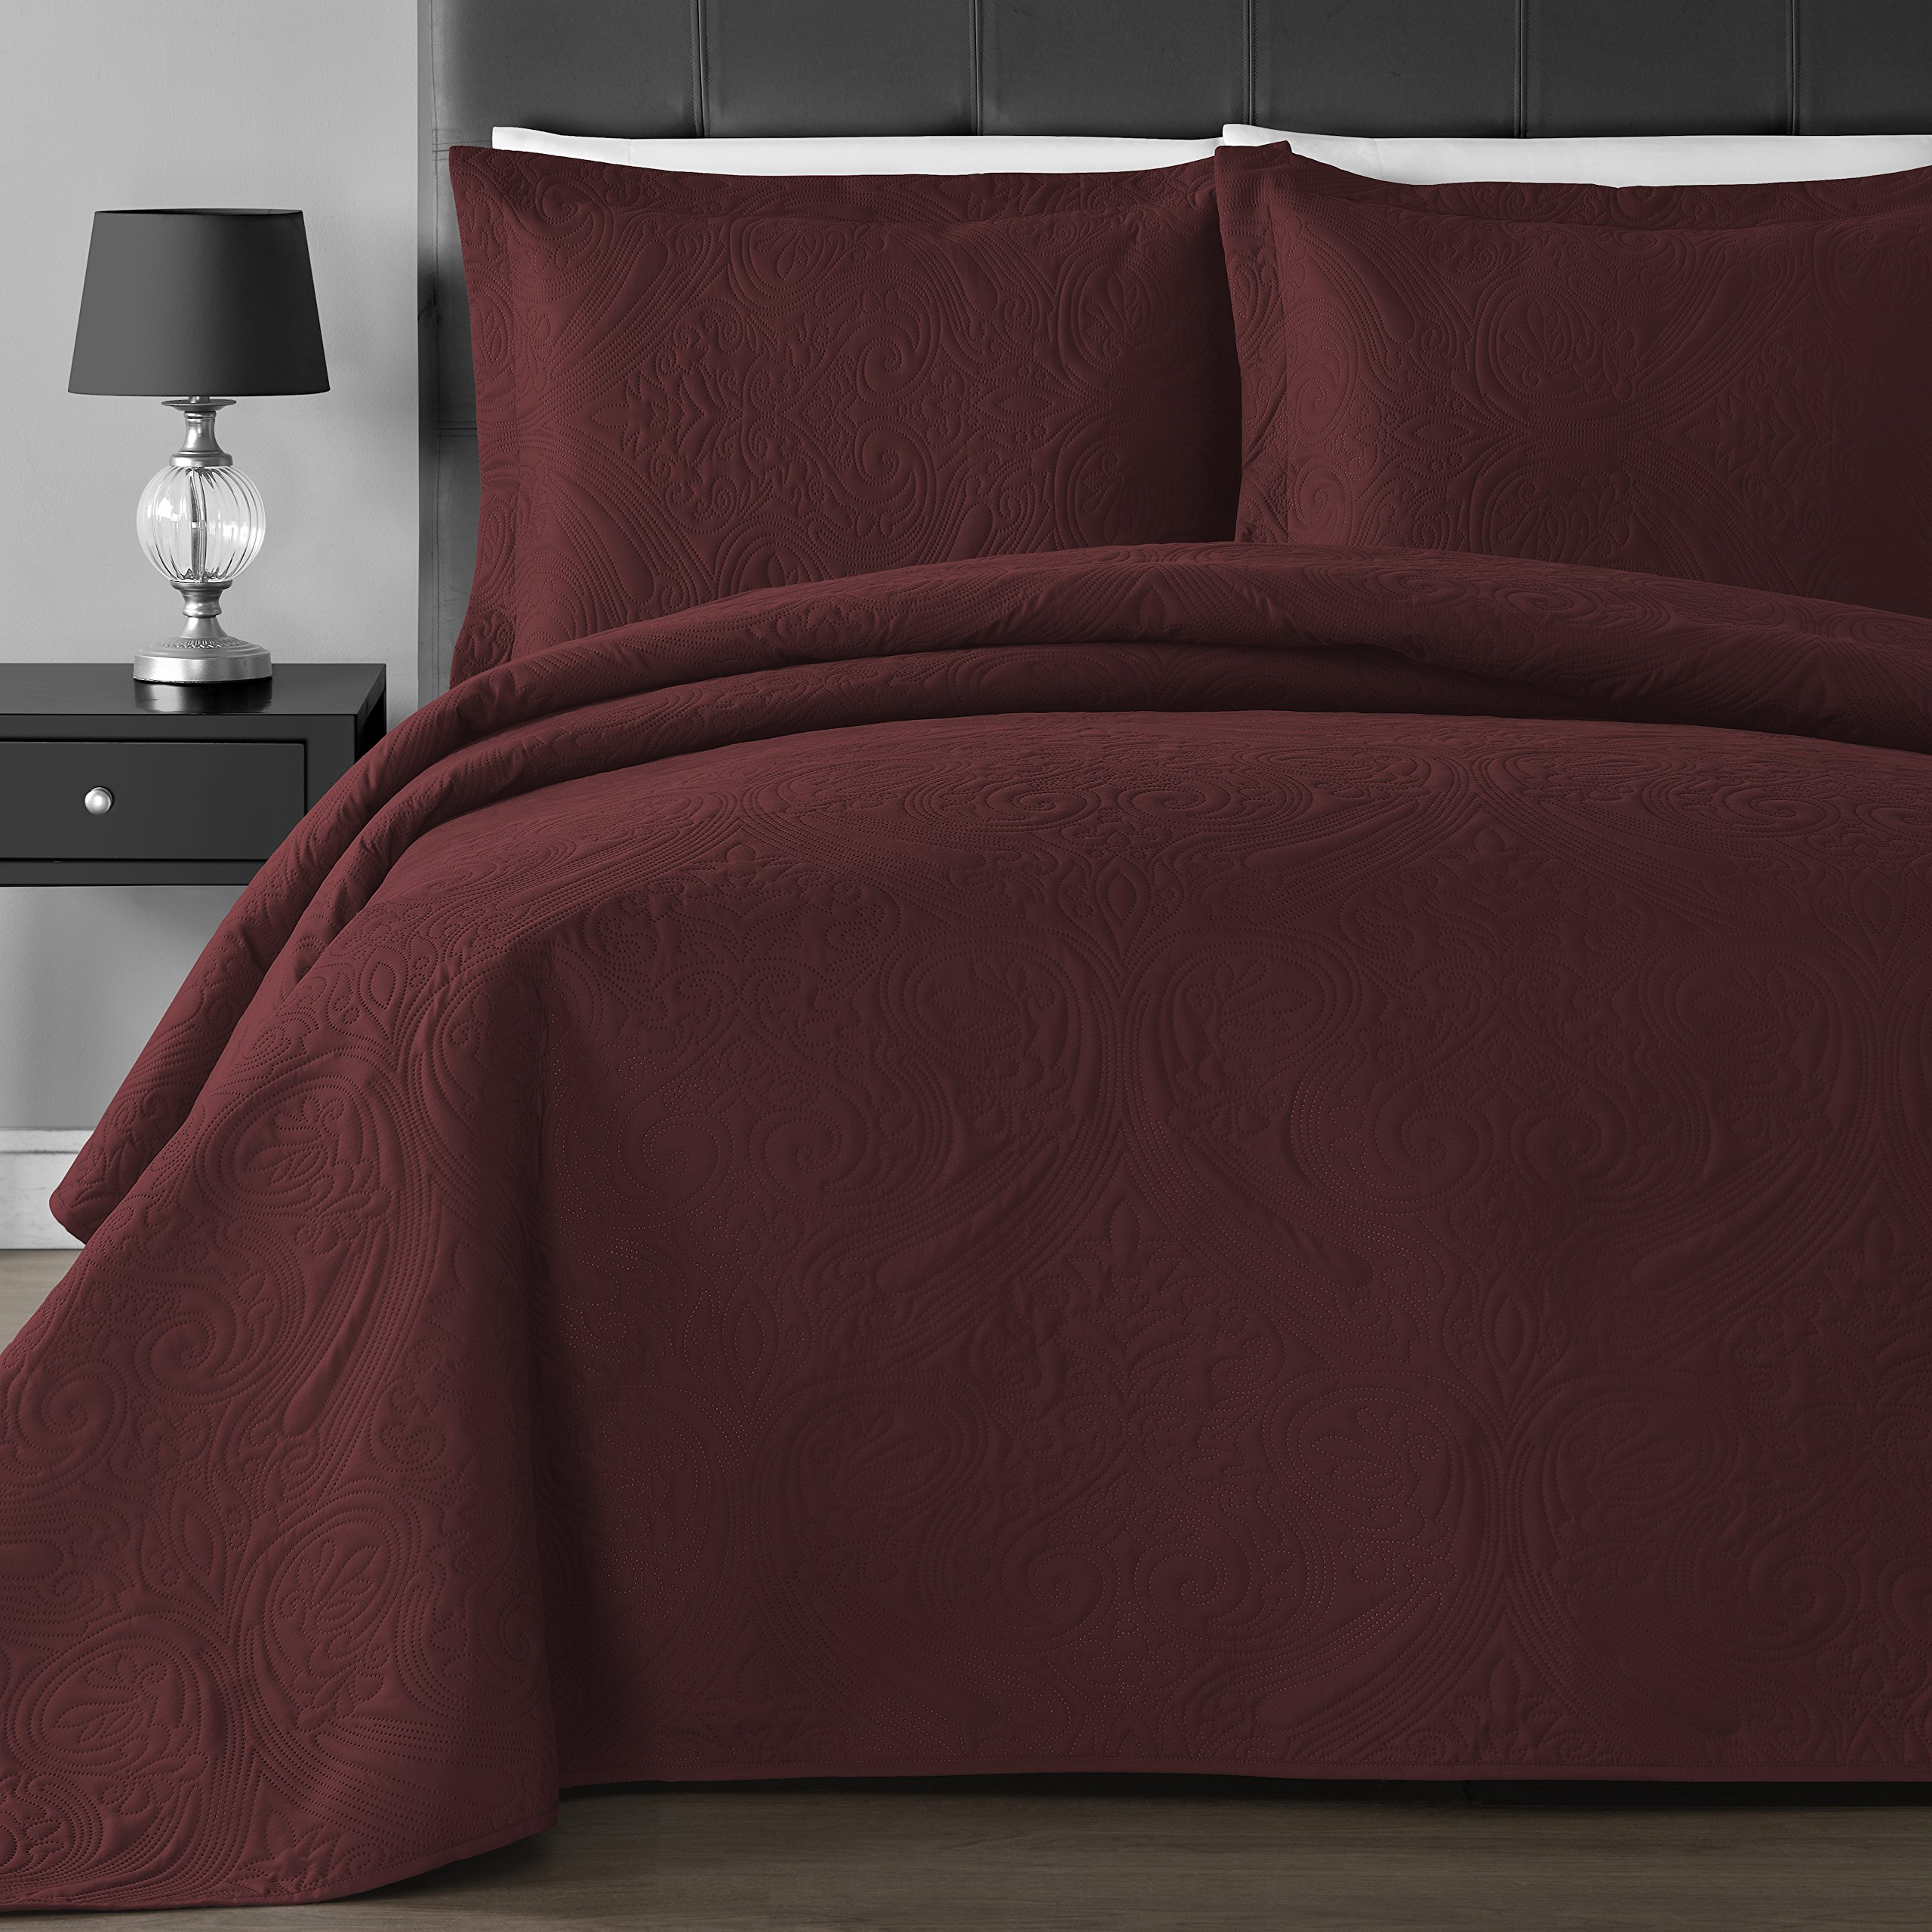 Comfy Bedding Extra Lightweight and Oversized Thermal Pressing Floral 3-piece Coverlet Set (King/Cal King, Burgundy)